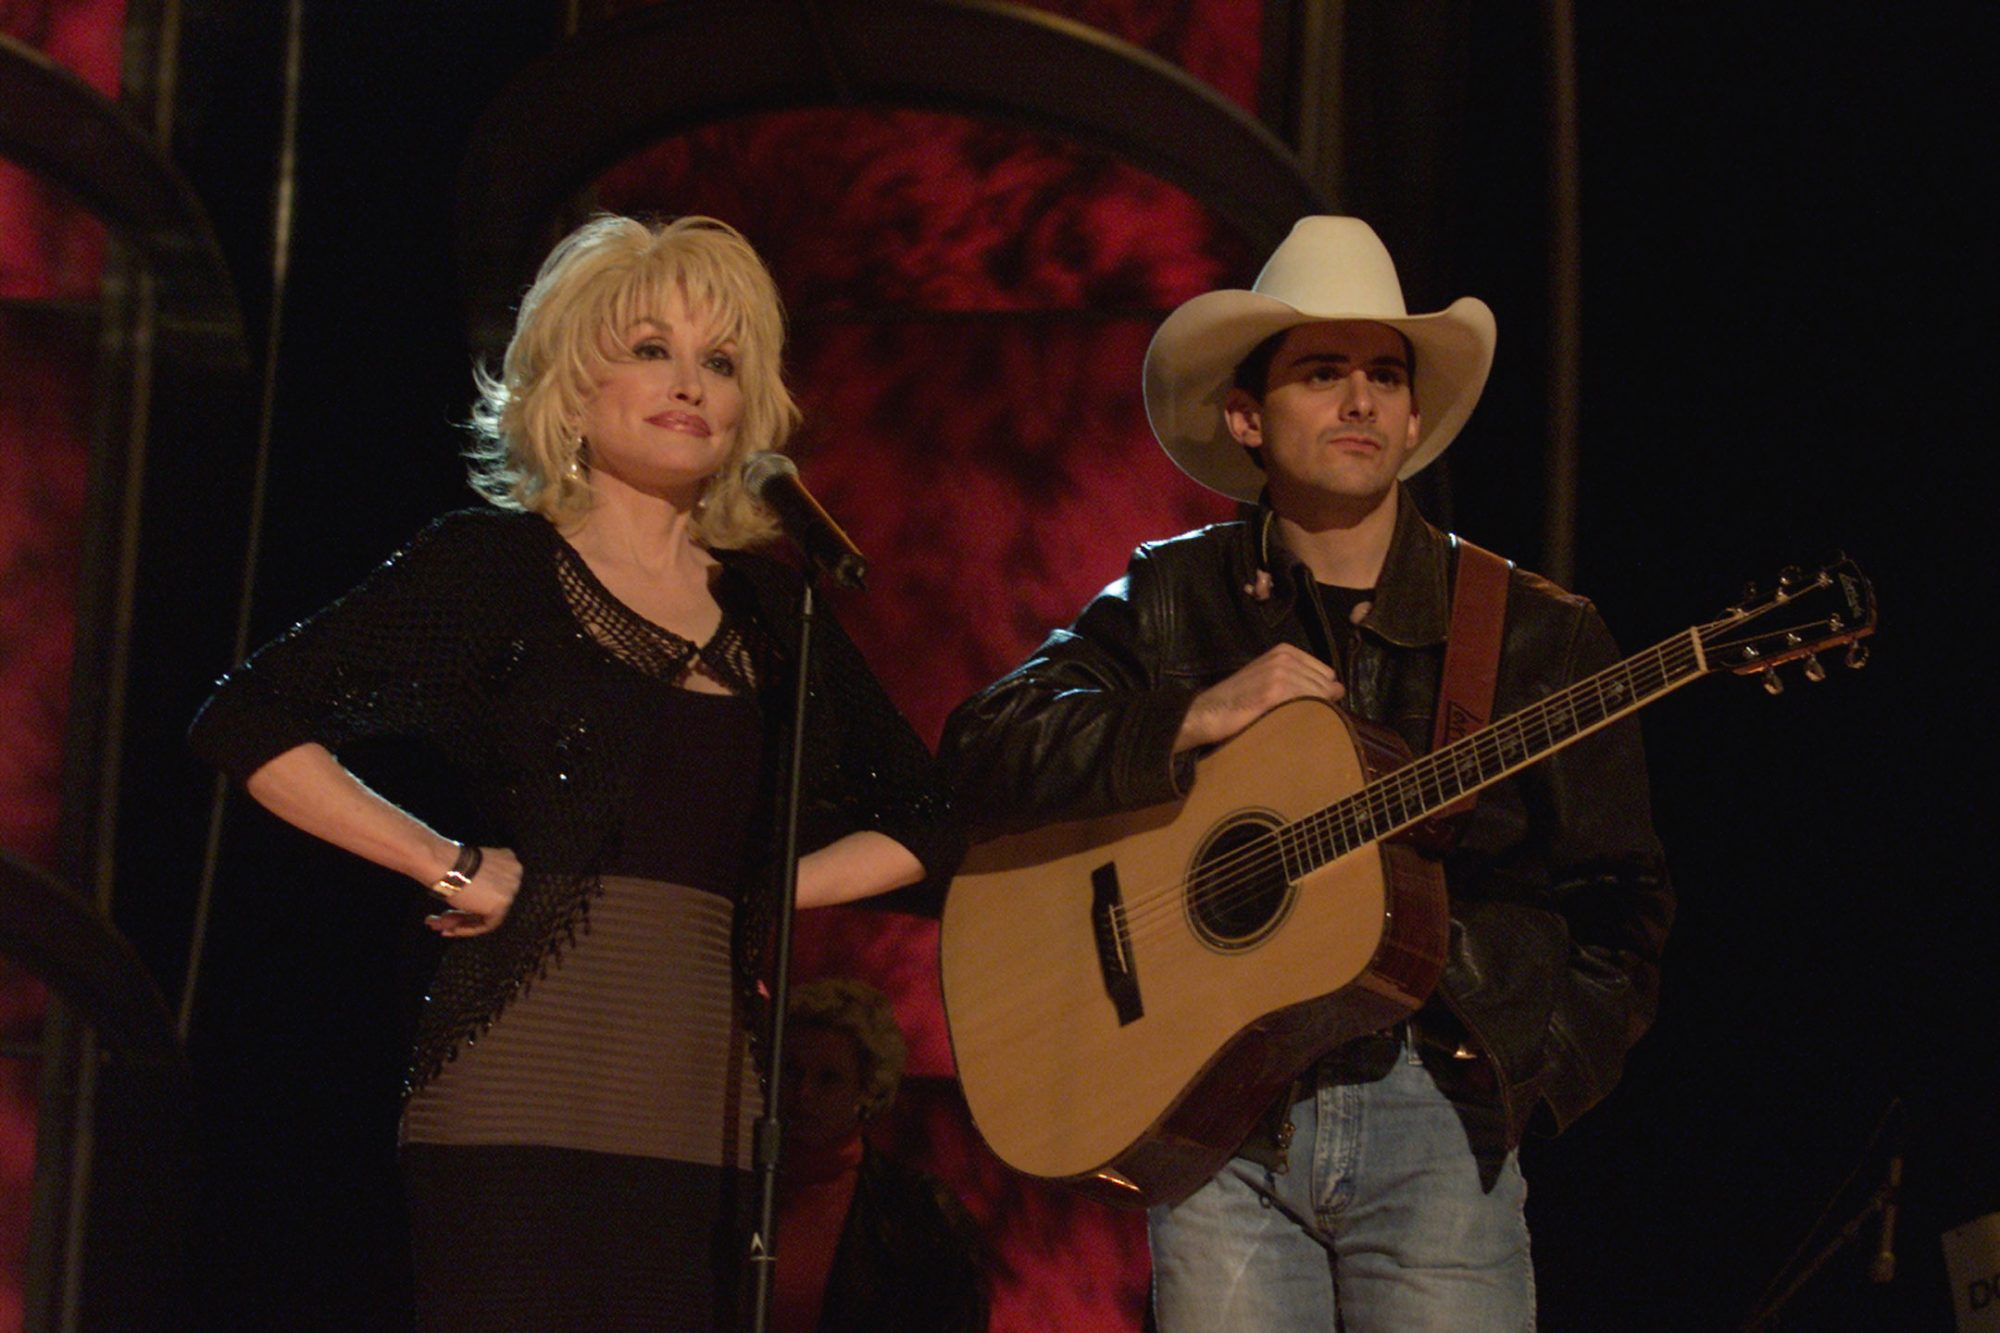 Dolly Parton and Brad Paisley